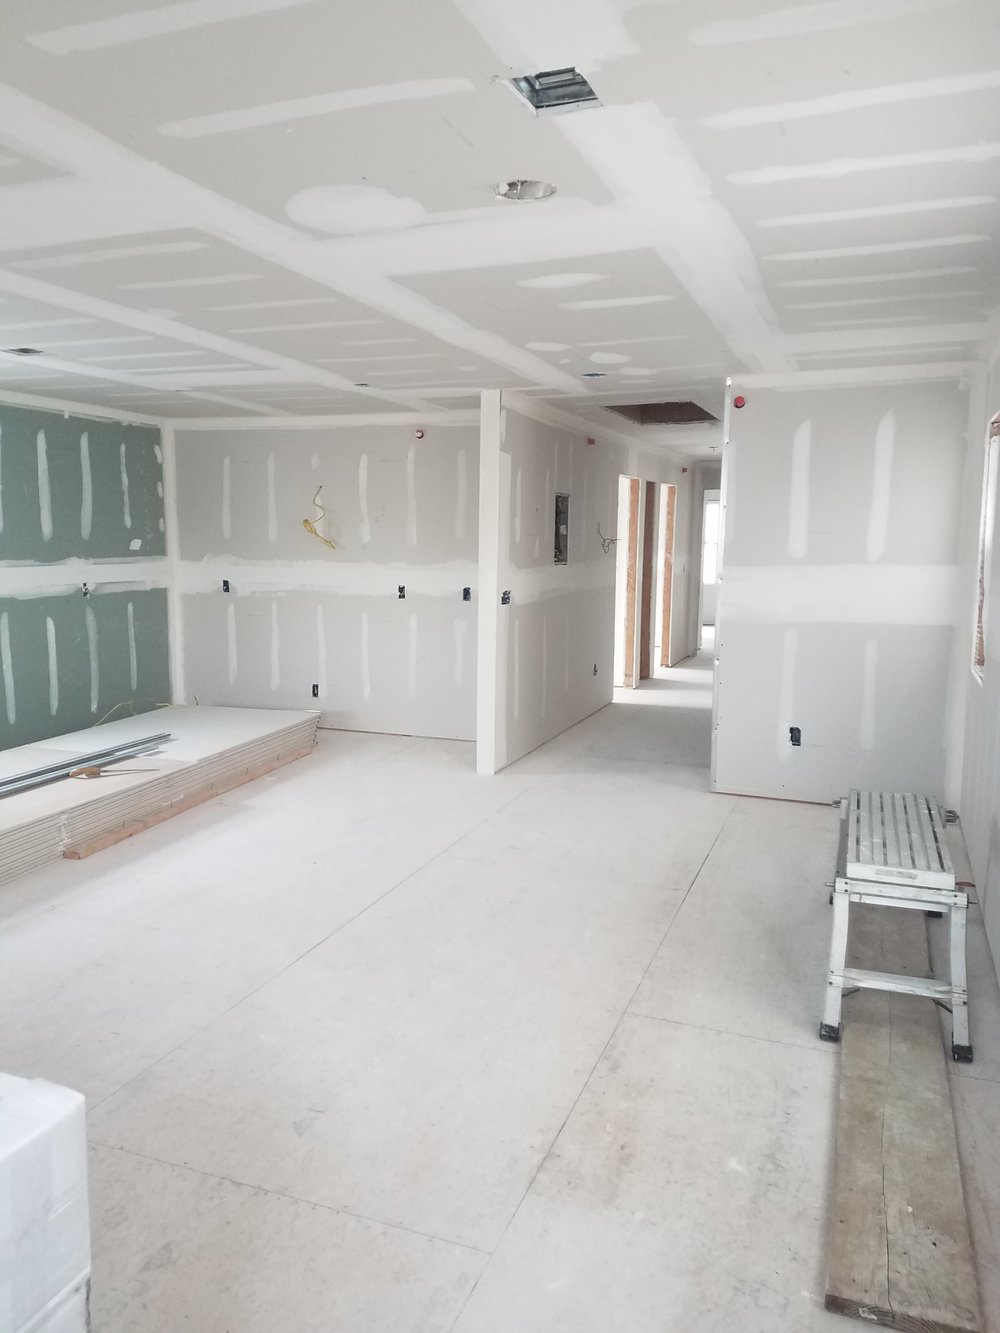 Living Room, Dining Room, and Kitchen Drywall